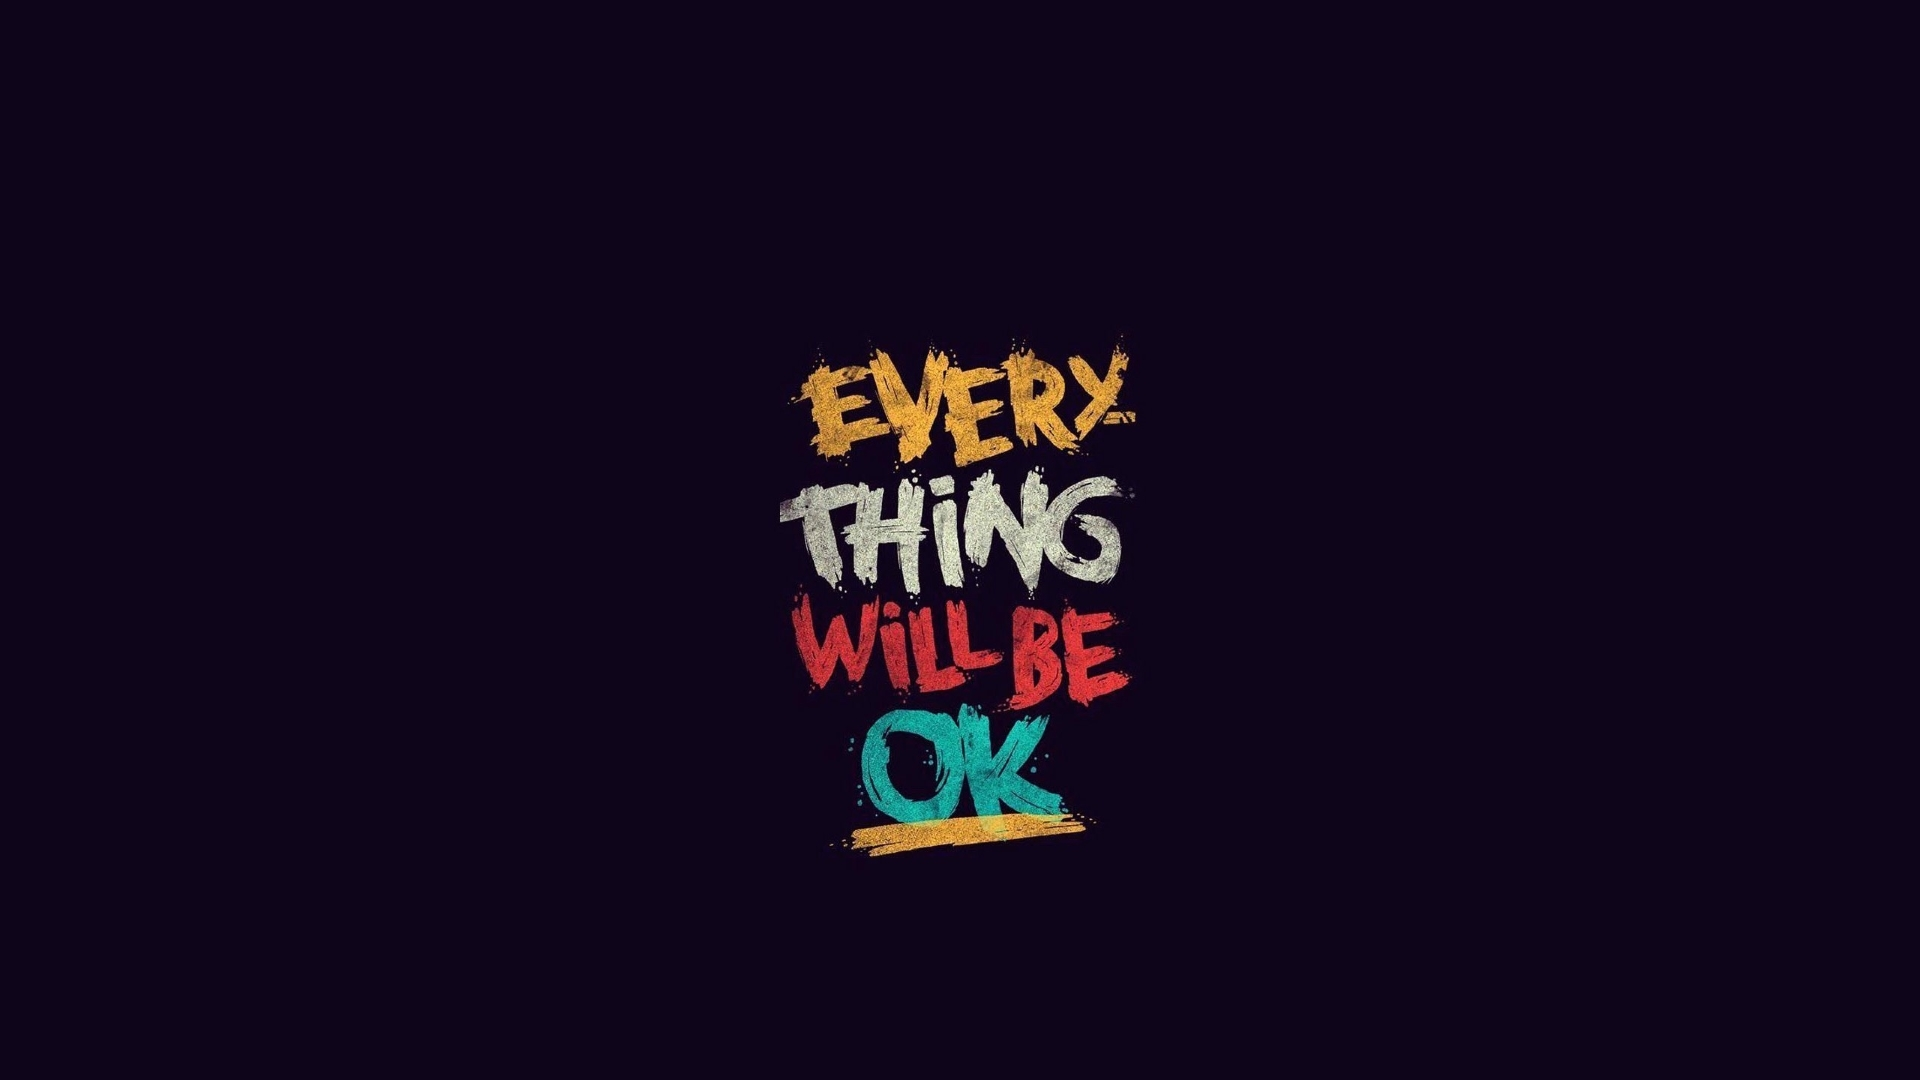 1920x1080 Everything Will Be Ok 1080p Laptop Full Hd Wallpaper Hd Inspirational Quotes 4k Wallpapers Images Photos And Background